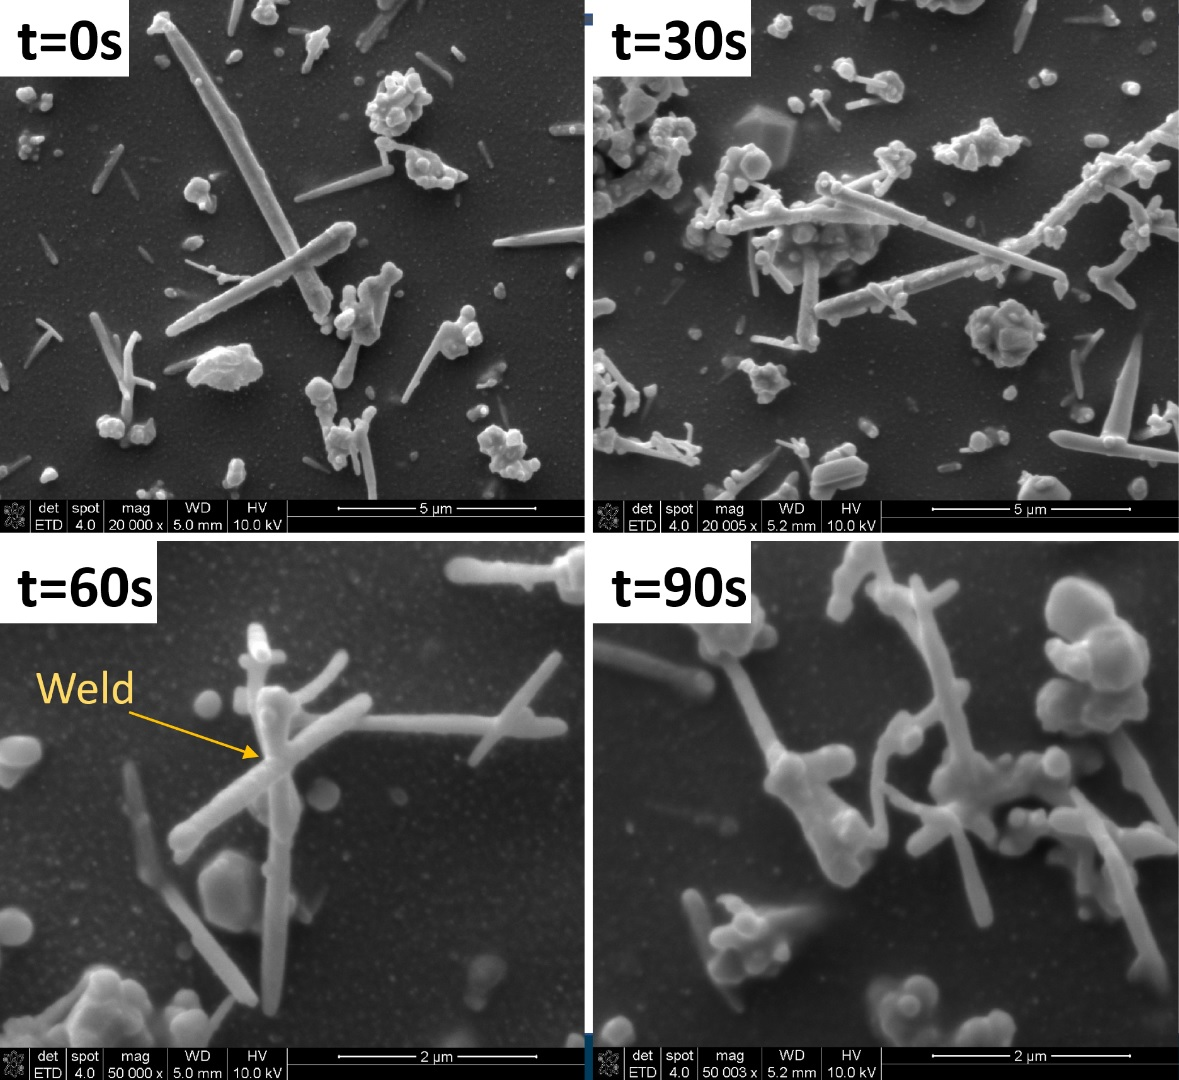 Nanowire Impregnated Poly-dimethyl Siloxane for Flexible, Thermally Conductive Fan-Out Wafer-Level Packaging